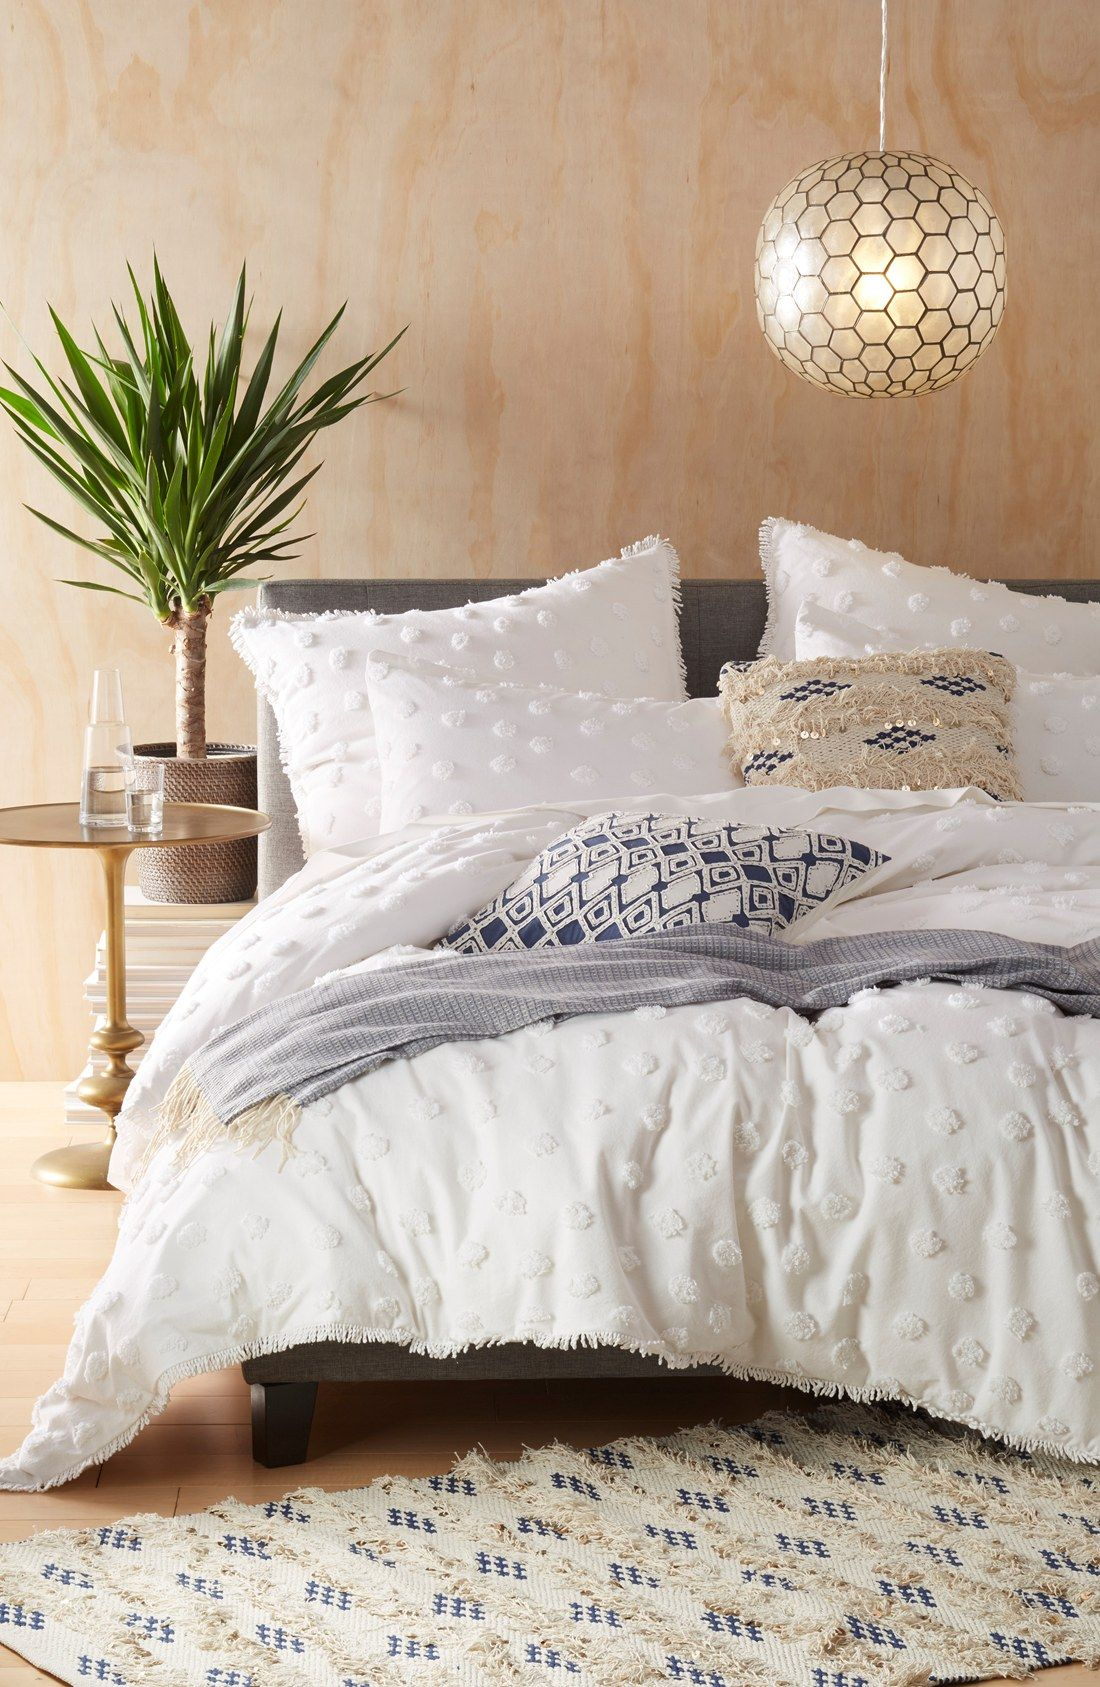 Bedspread designs texture - Loving This Shabby Chic Bedroom Set In Neutral Colors For Easy Accessorizing